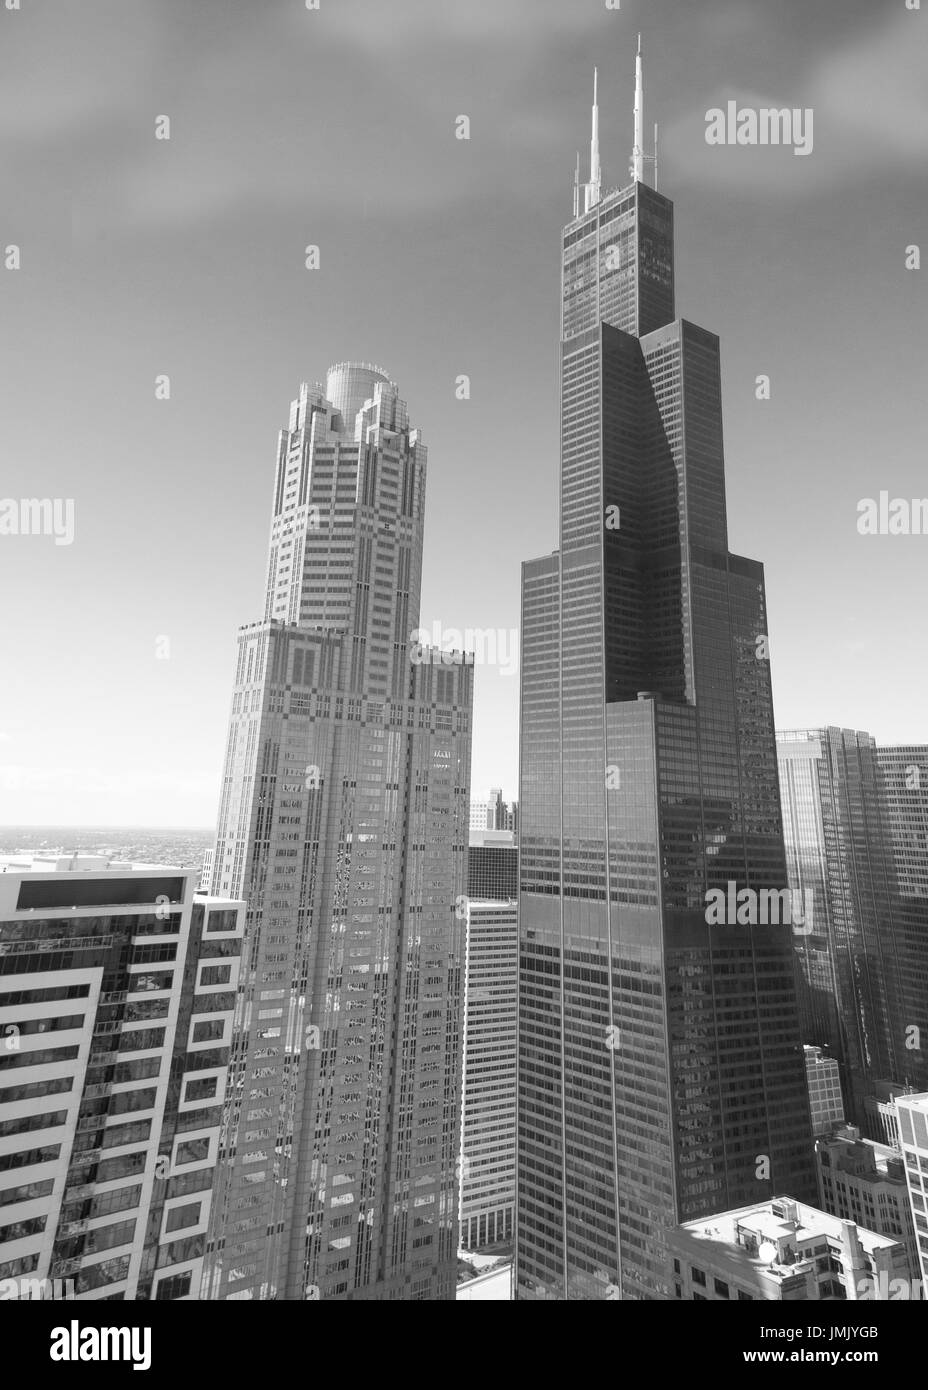 The world-famous Sears Tower in full glory - Stock Image